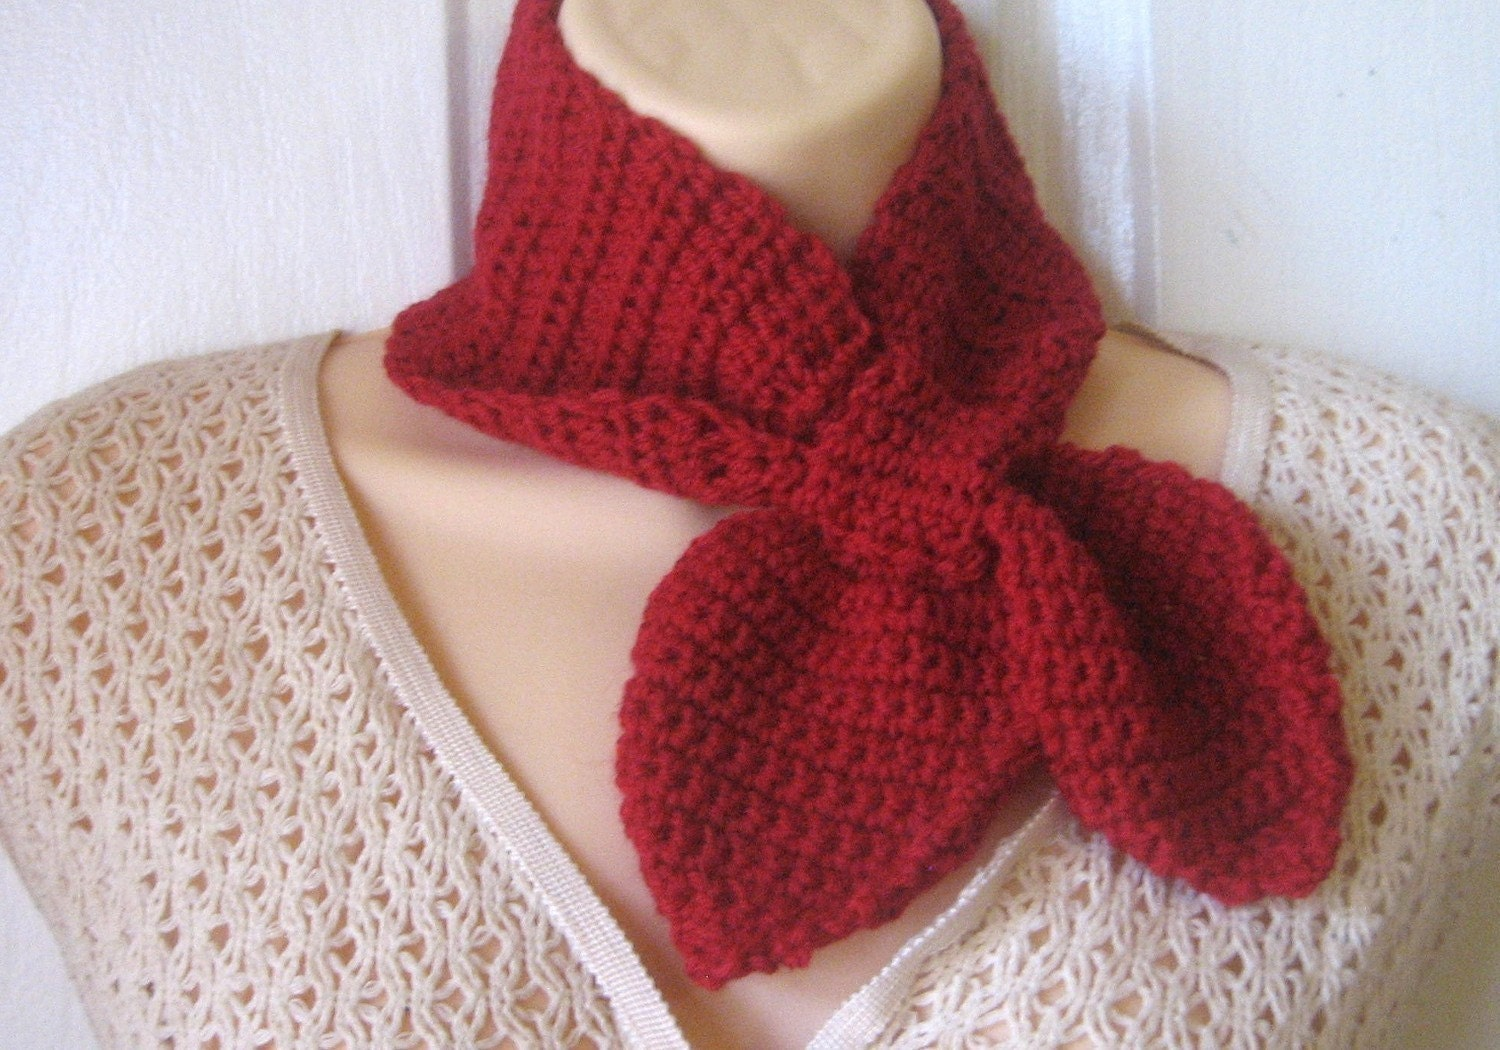 This is a photo of Soft Printable Crochet Patterns